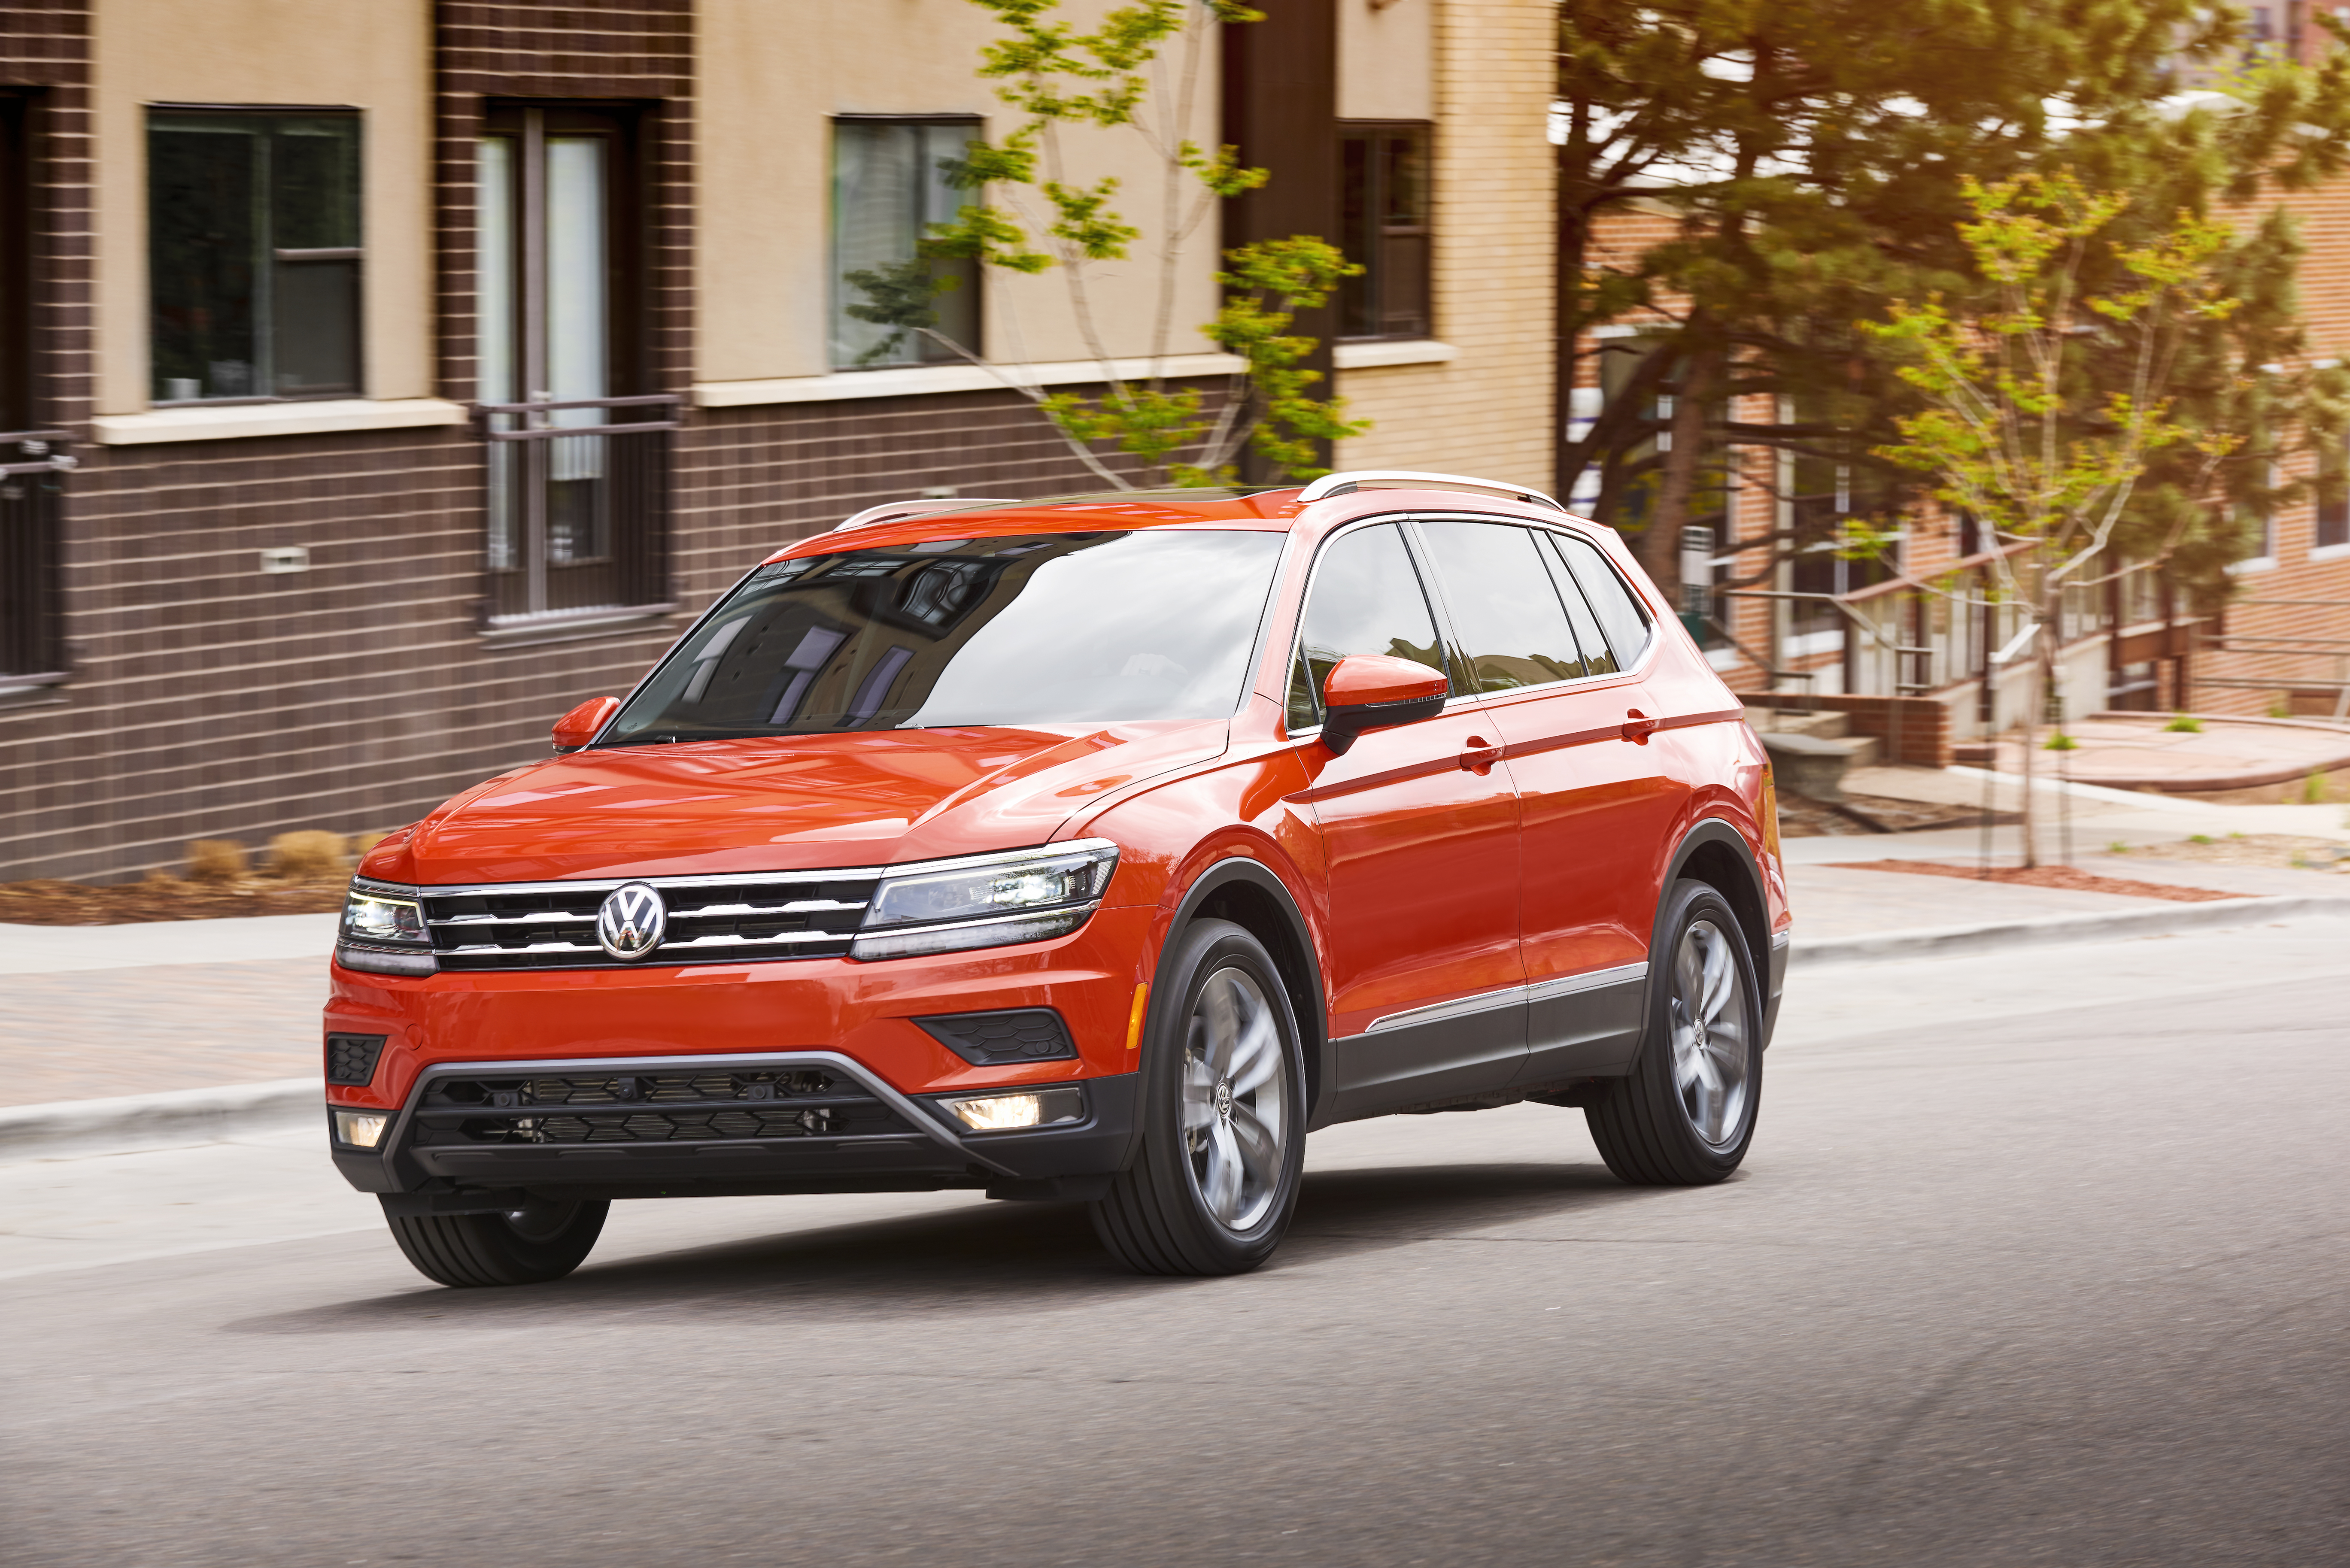 next generation 2018 volkswagen tiguan has a lot of ultra high strength steel repairer driven news. Black Bedroom Furniture Sets. Home Design Ideas